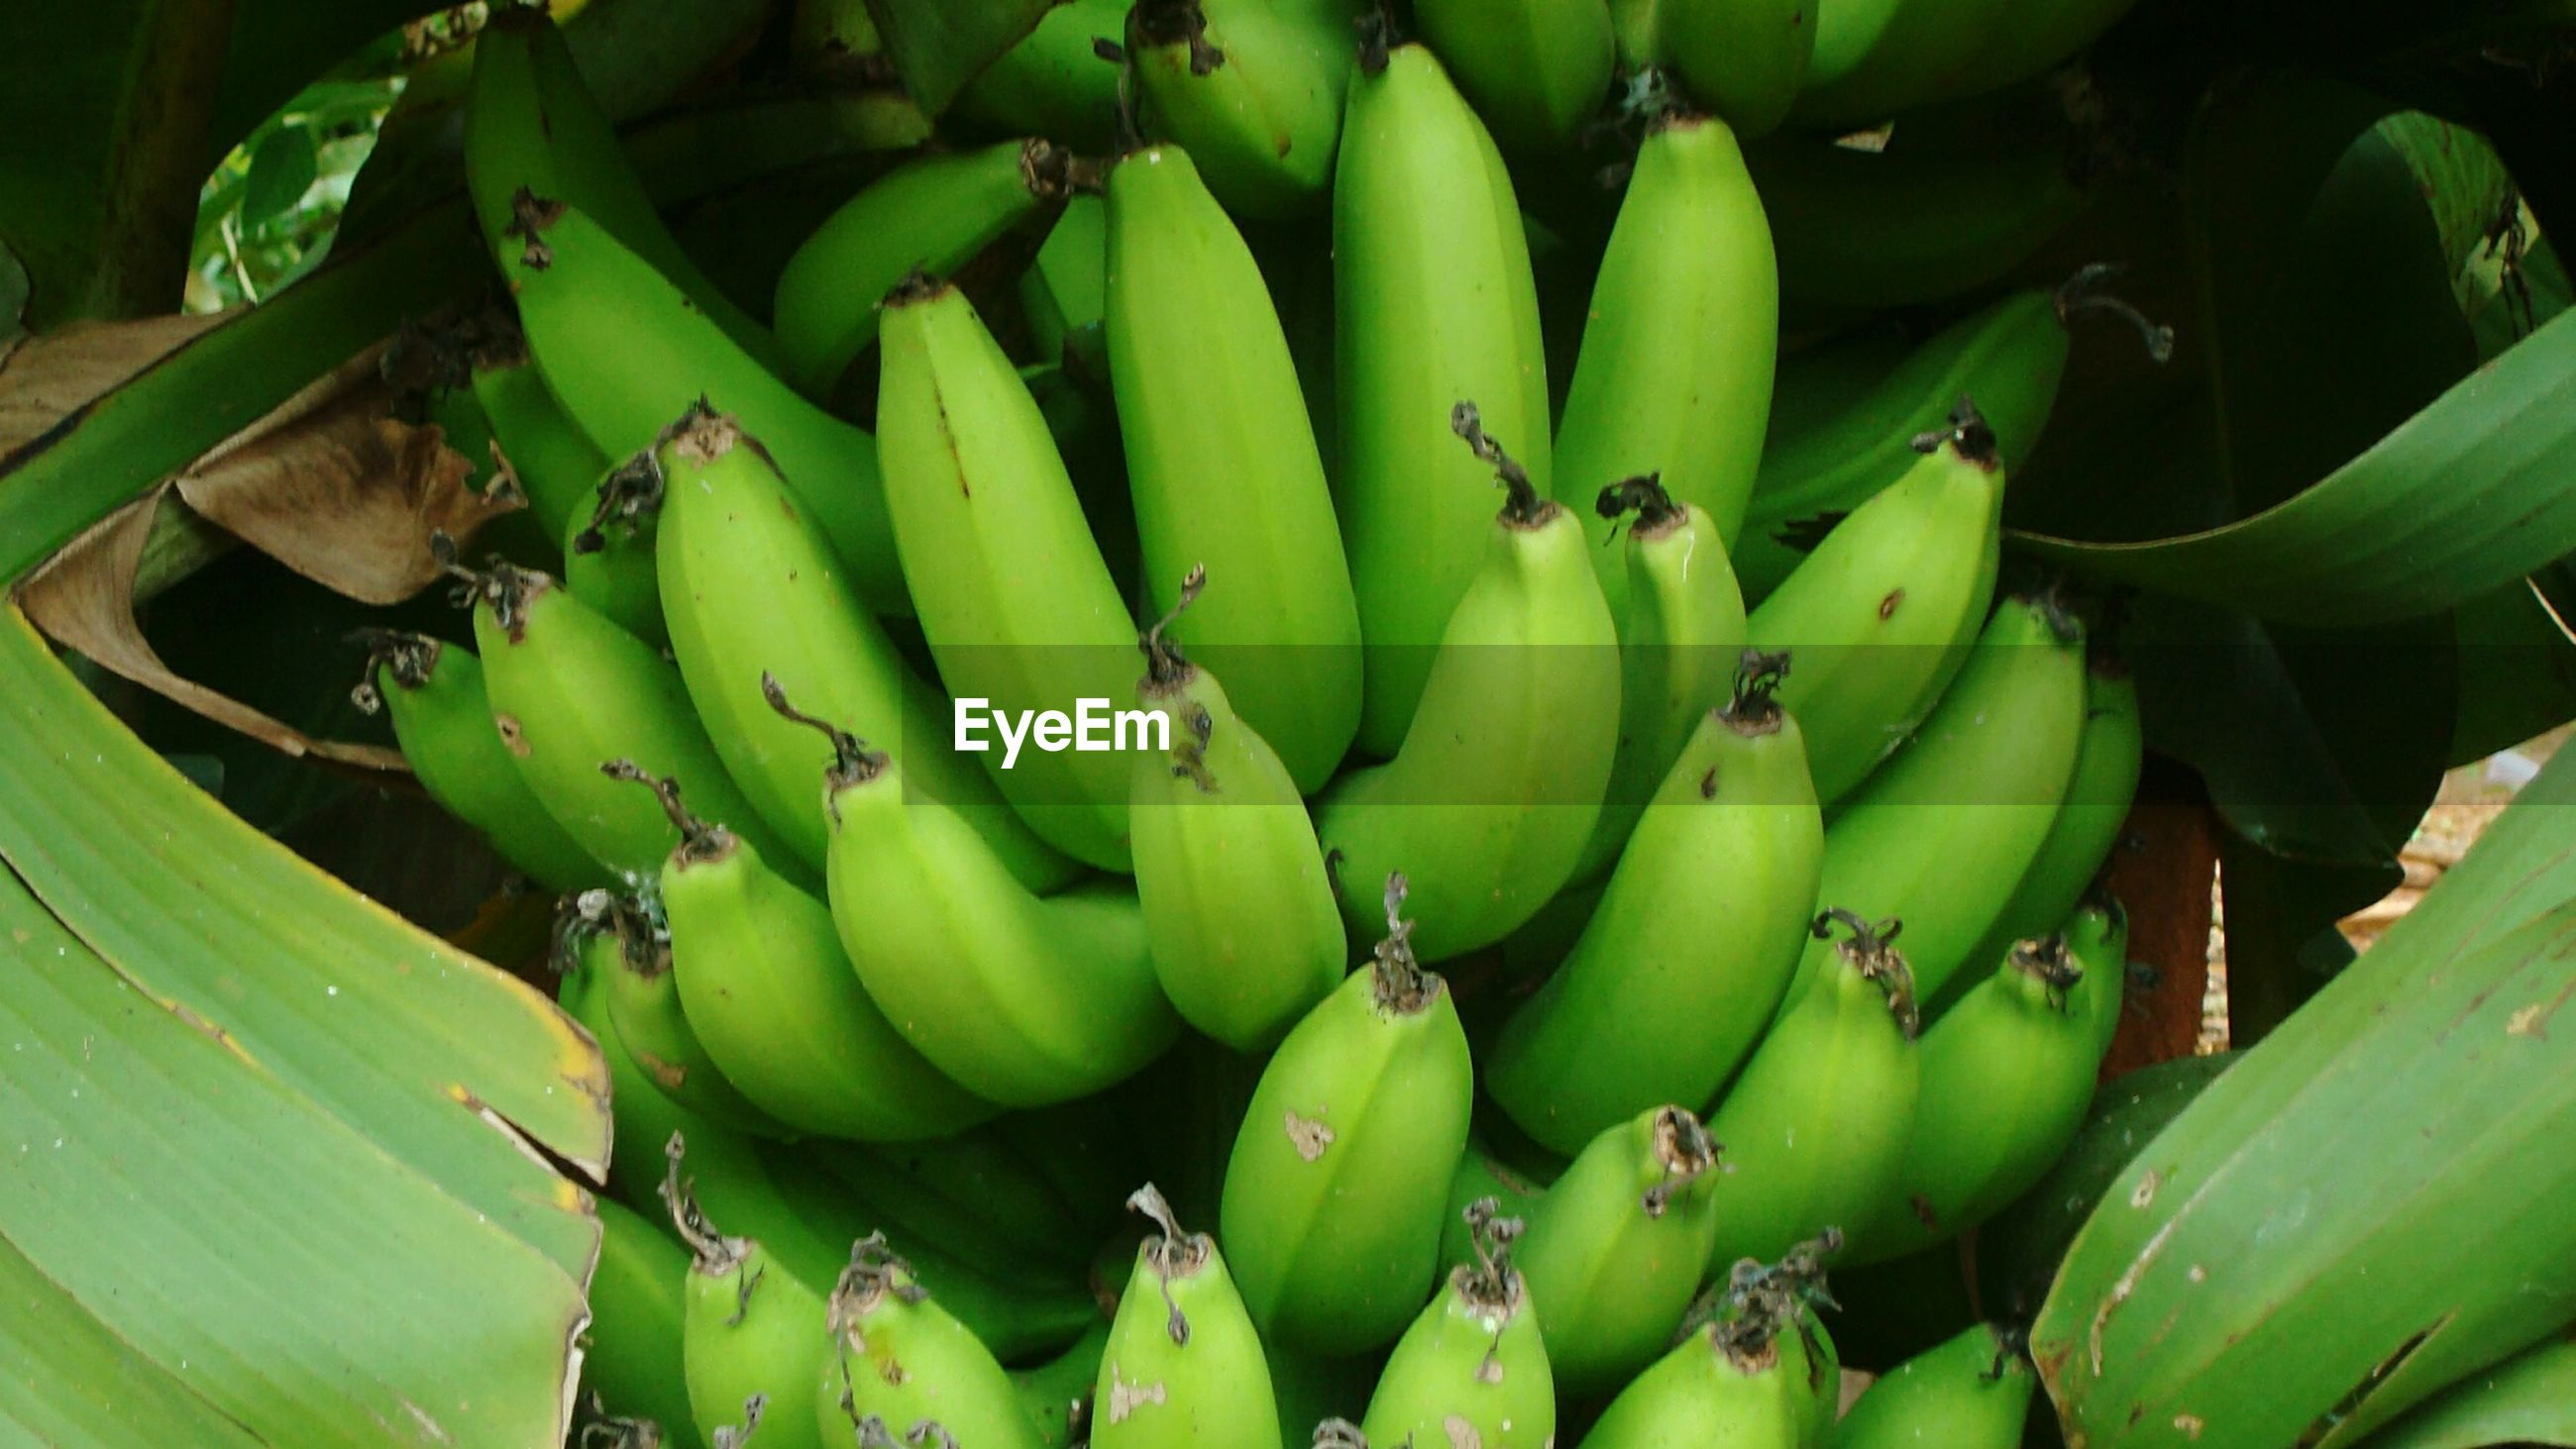 green color, close-up, growth, banana, danger, freshness, plant, green, selective focus, nature, bunch, succulent plant, full frame, vibrant color, thorn, abundance, spiked